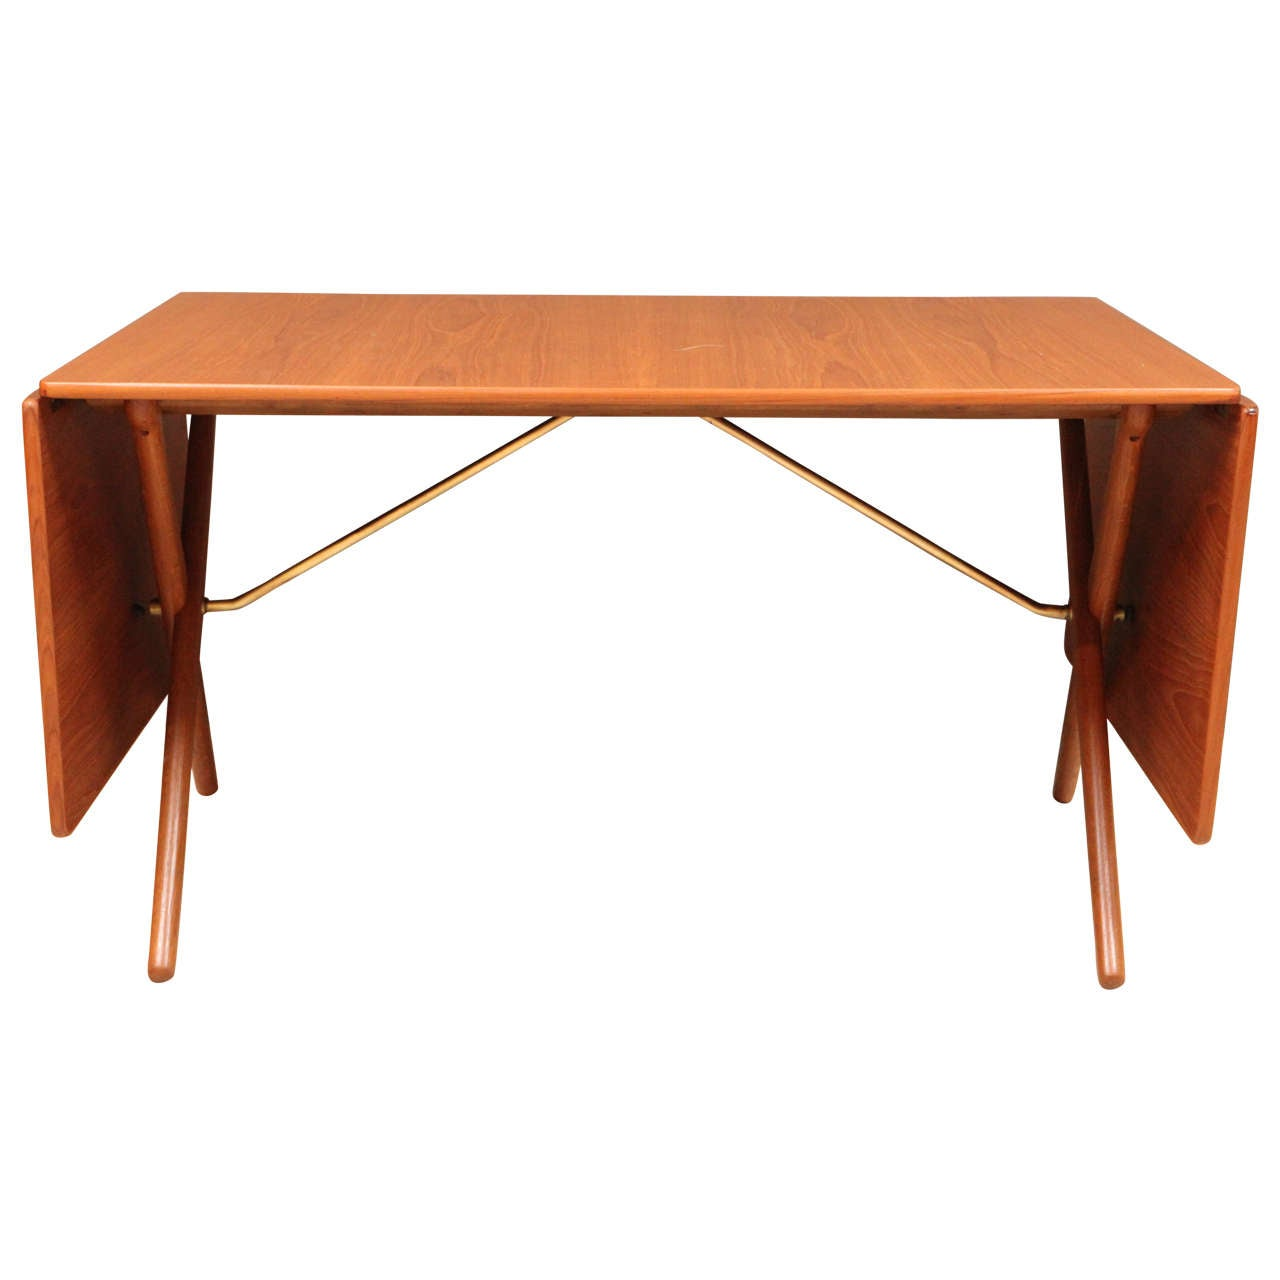 Hans wegner teak drop leaf dining table at 1stdibs for Drop leaf dining table